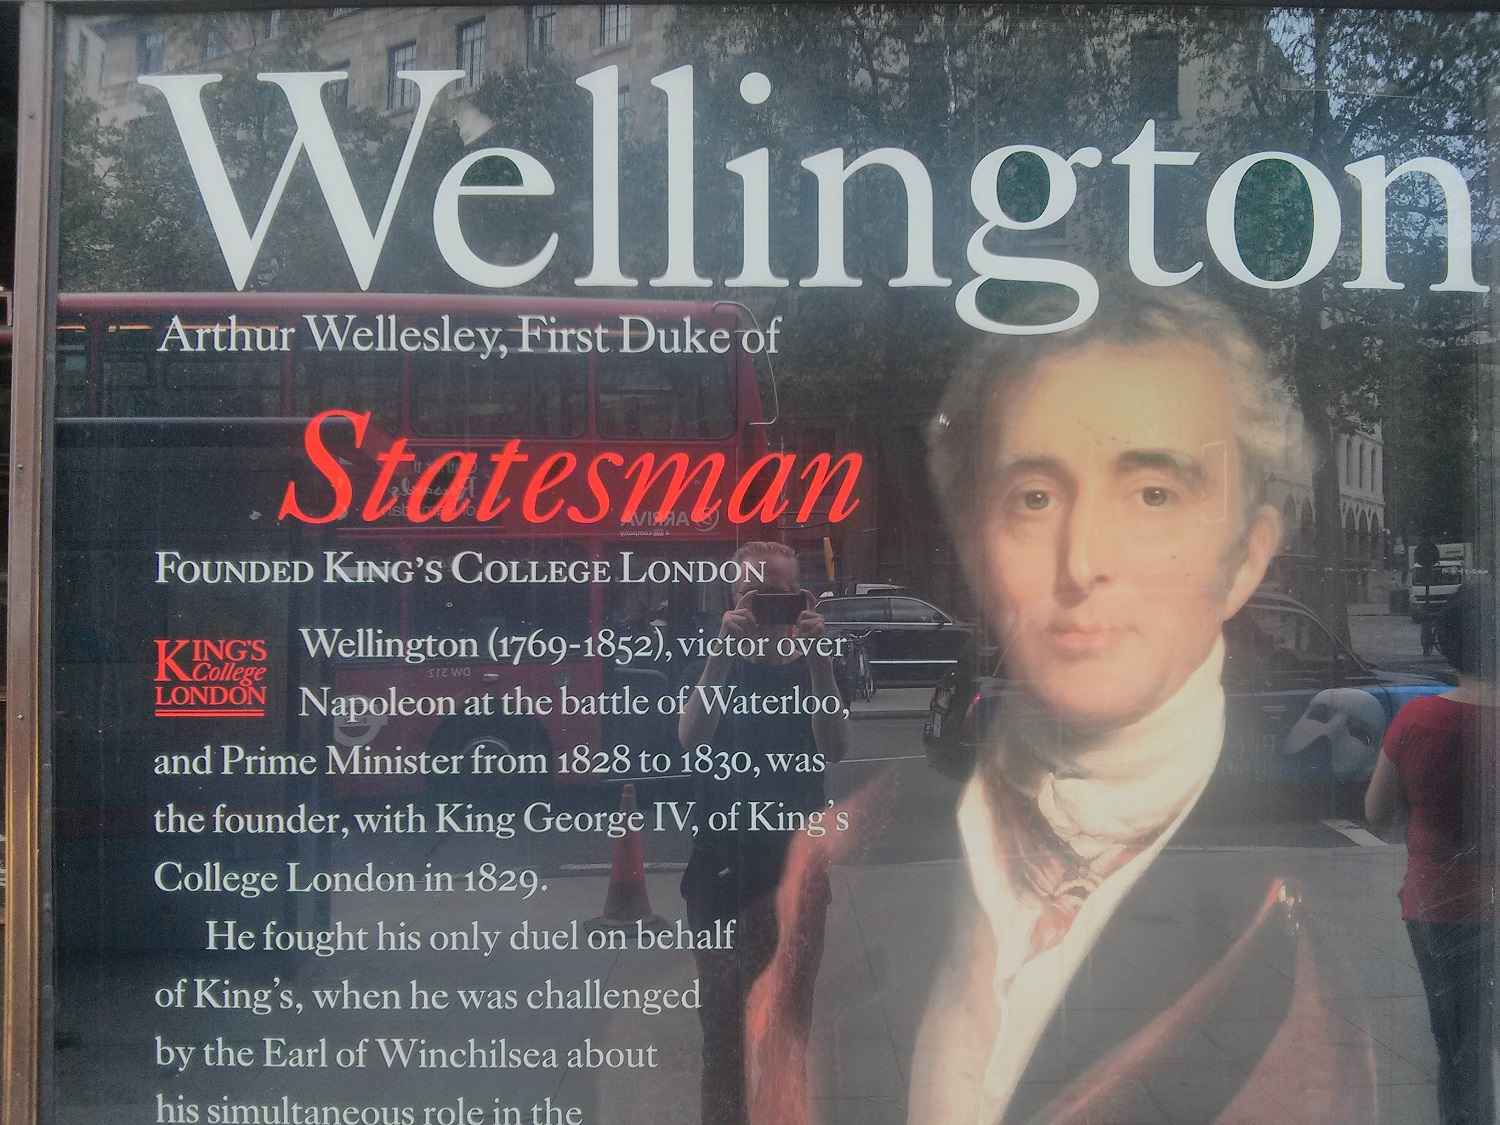 The Duke of Wellington: co-founder of King's College